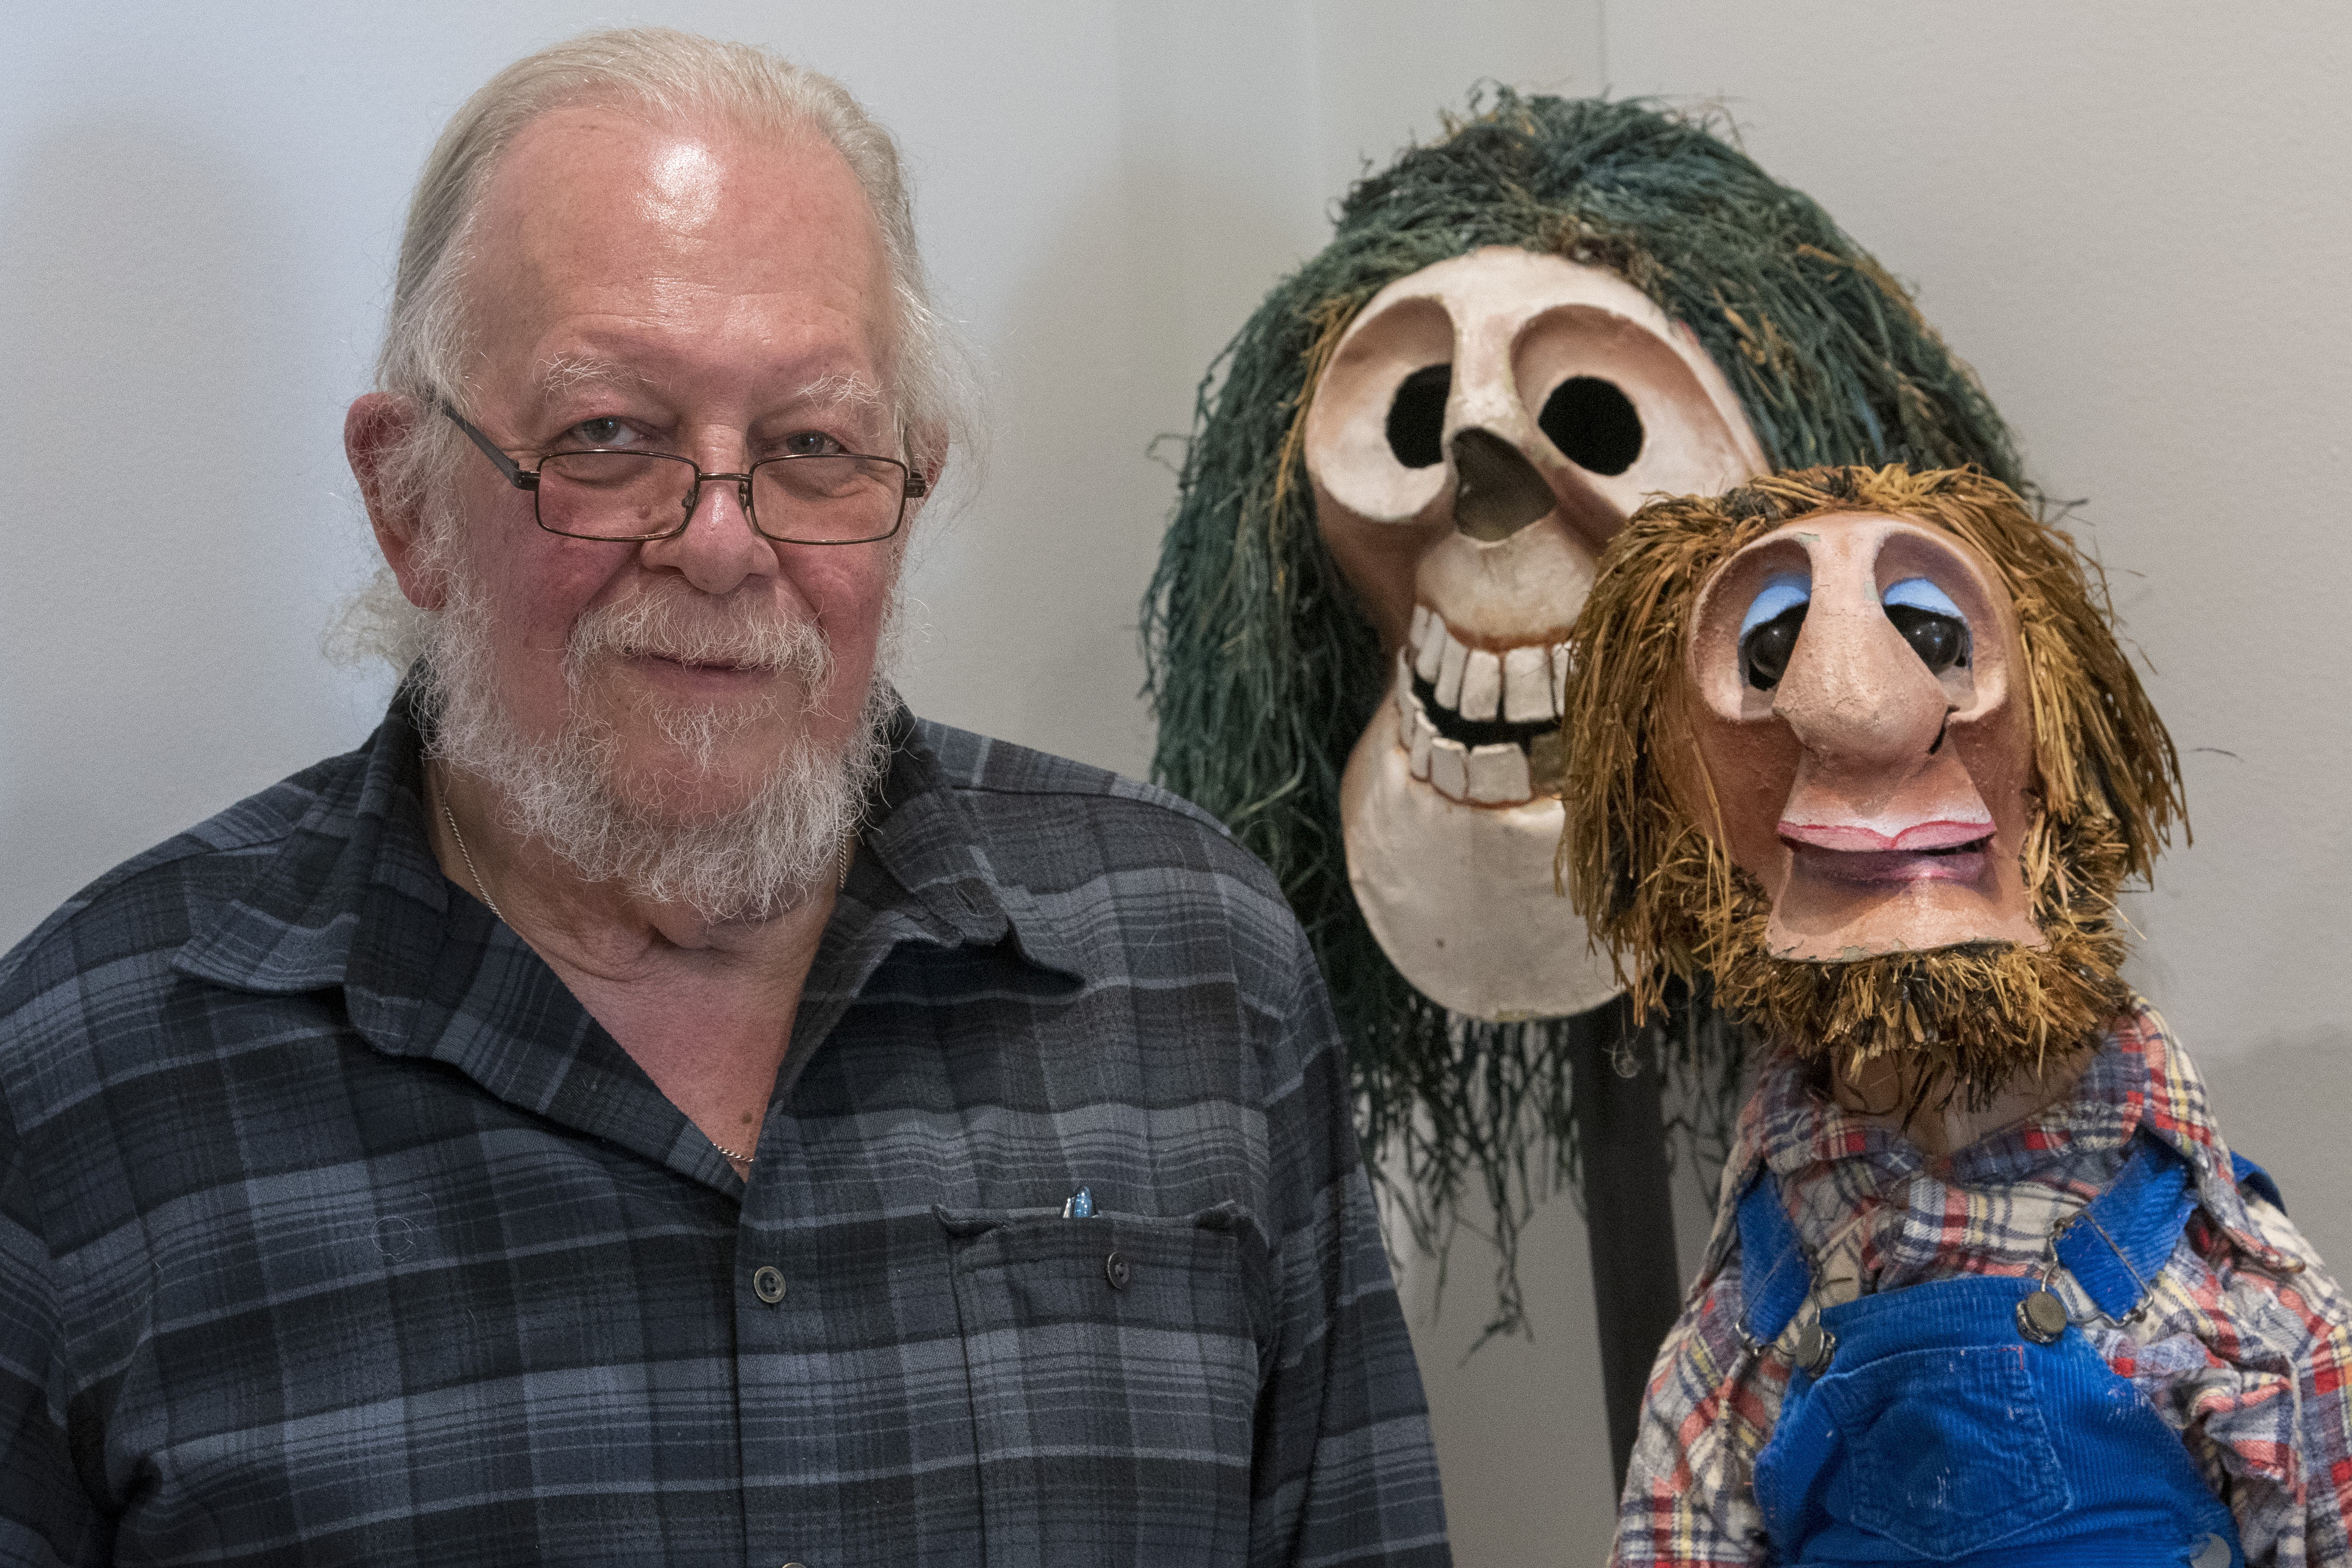 The Ballard Institute and Museum of Puppetry is celebrating Puppet Arts program director Bart Roccoberton's career as puppeteer and educator with an exhibition of nearly 100 puppets he and his collaborators and students created. Shown here are Captain Kidd (back) and Dougie Hutchins from 'Tales of the Leatherman'. (Sean Flynn/UConn Photo)